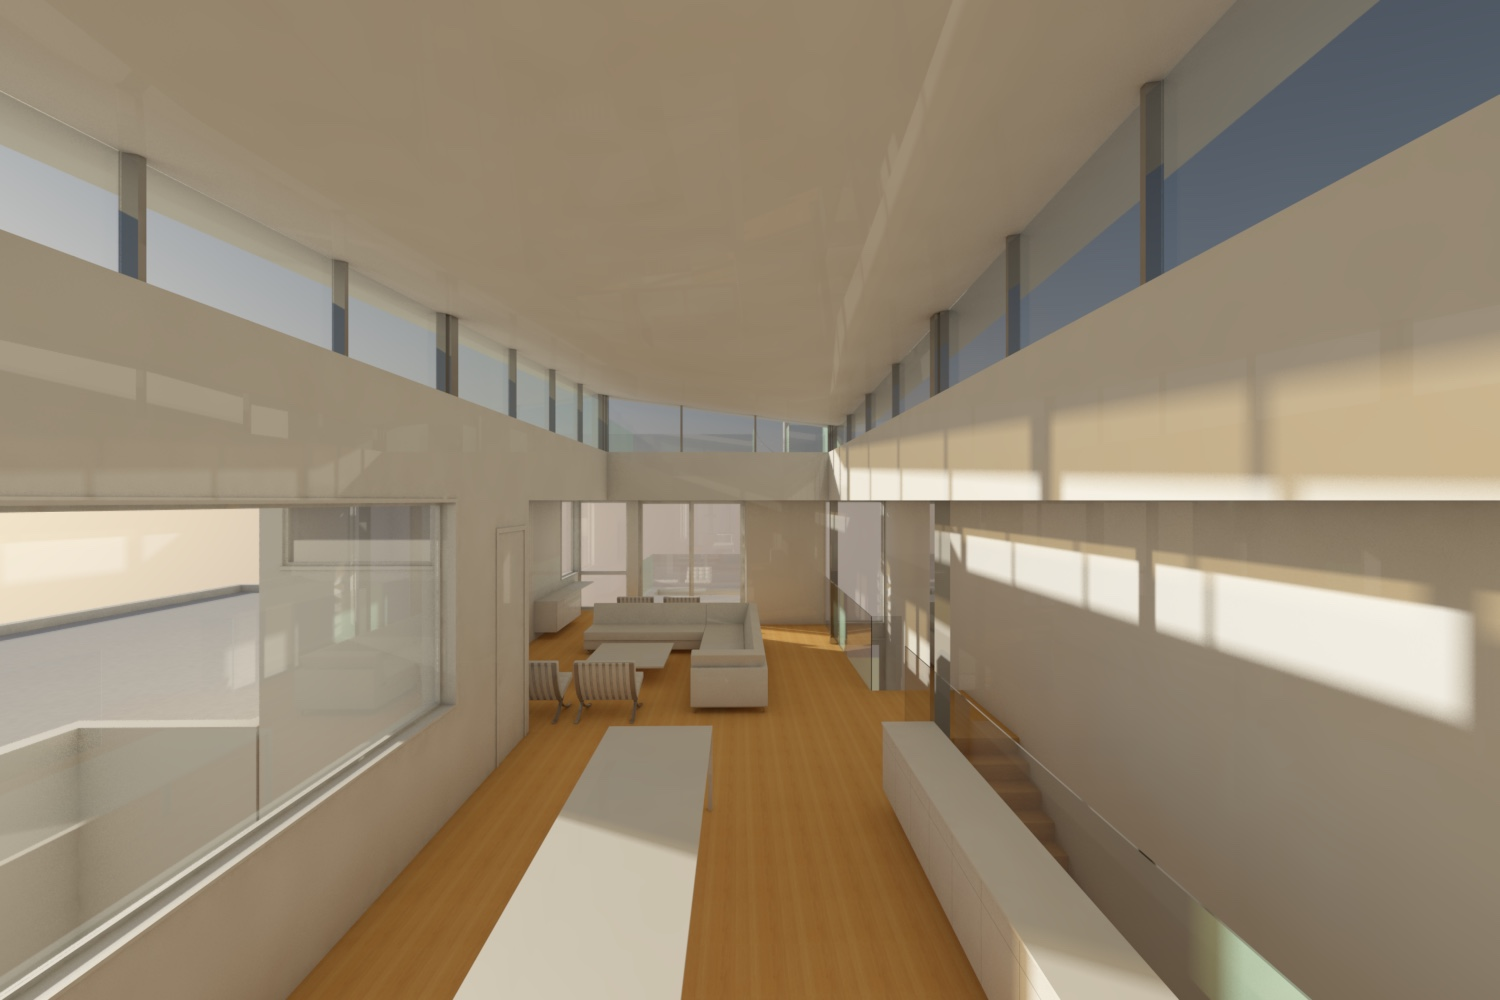 The clerestory allows light to flood the interior of an otherwise confined space.